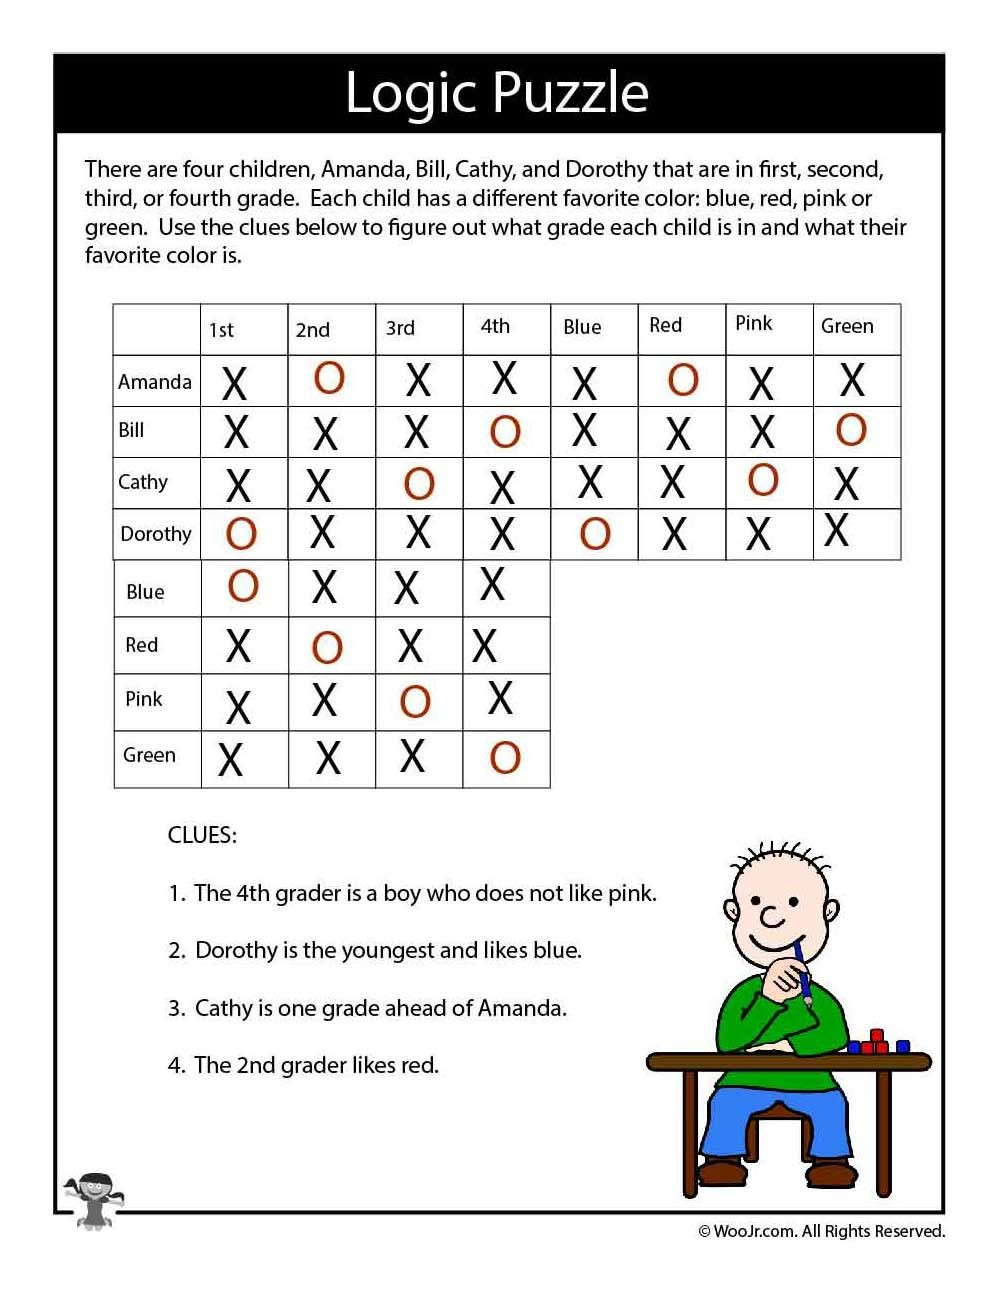 3rd Grade Brain Teasers Printable Hard Logic Puzzle for Kids Answers